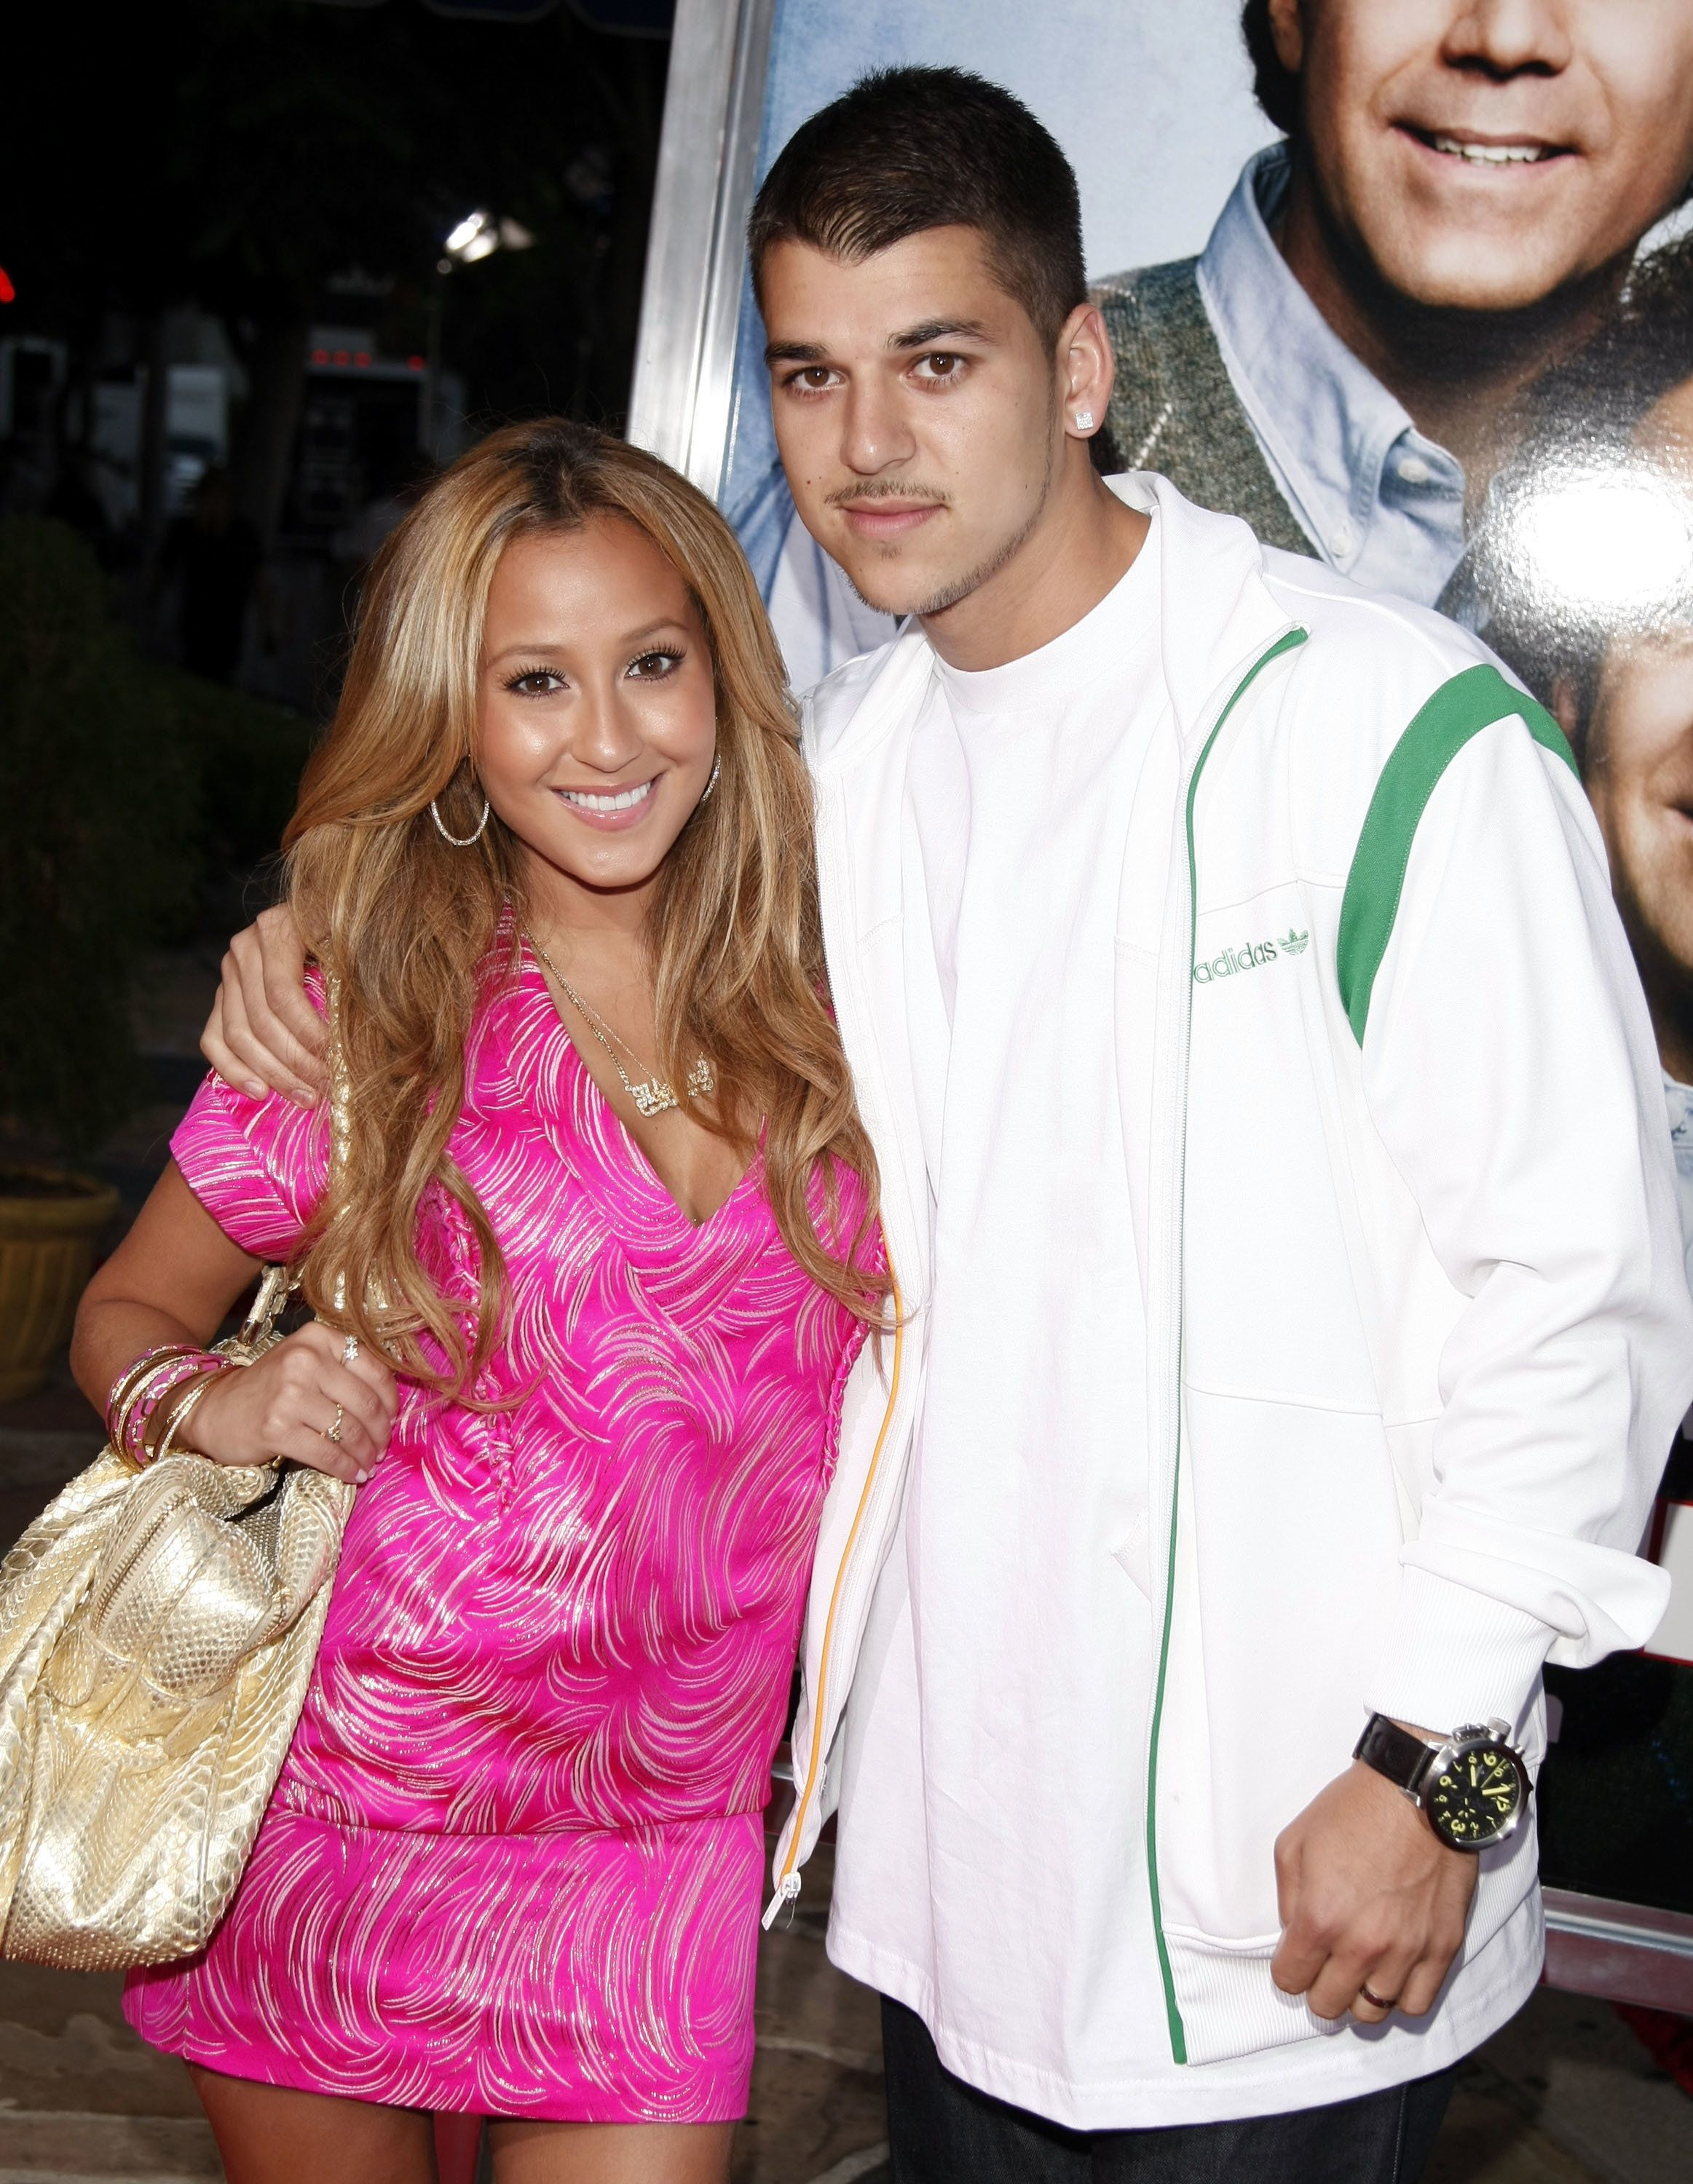 LOS ANGELES, CA - JULY 15:  Singer Adrienne Bailon (L) and Rob Kardashian arrive at the premiere of Sony Picture's 'Step Brothers' at the Village Theater on July 15, 2008 in Los Angeles, California.  (Photo by Kevin Winter/Getty Images)